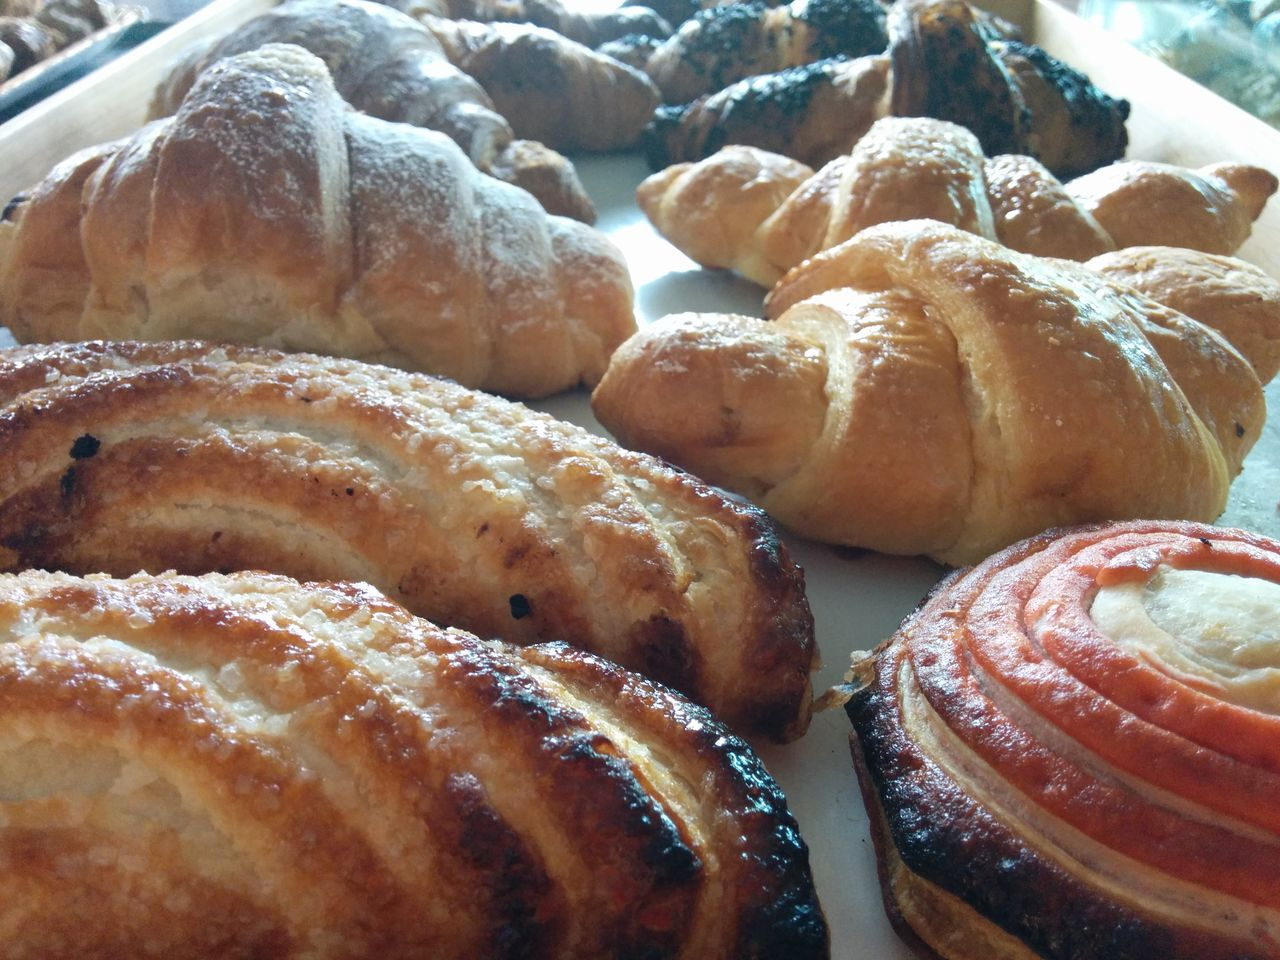 Croissant Backery Colazione Delicatessen food morning